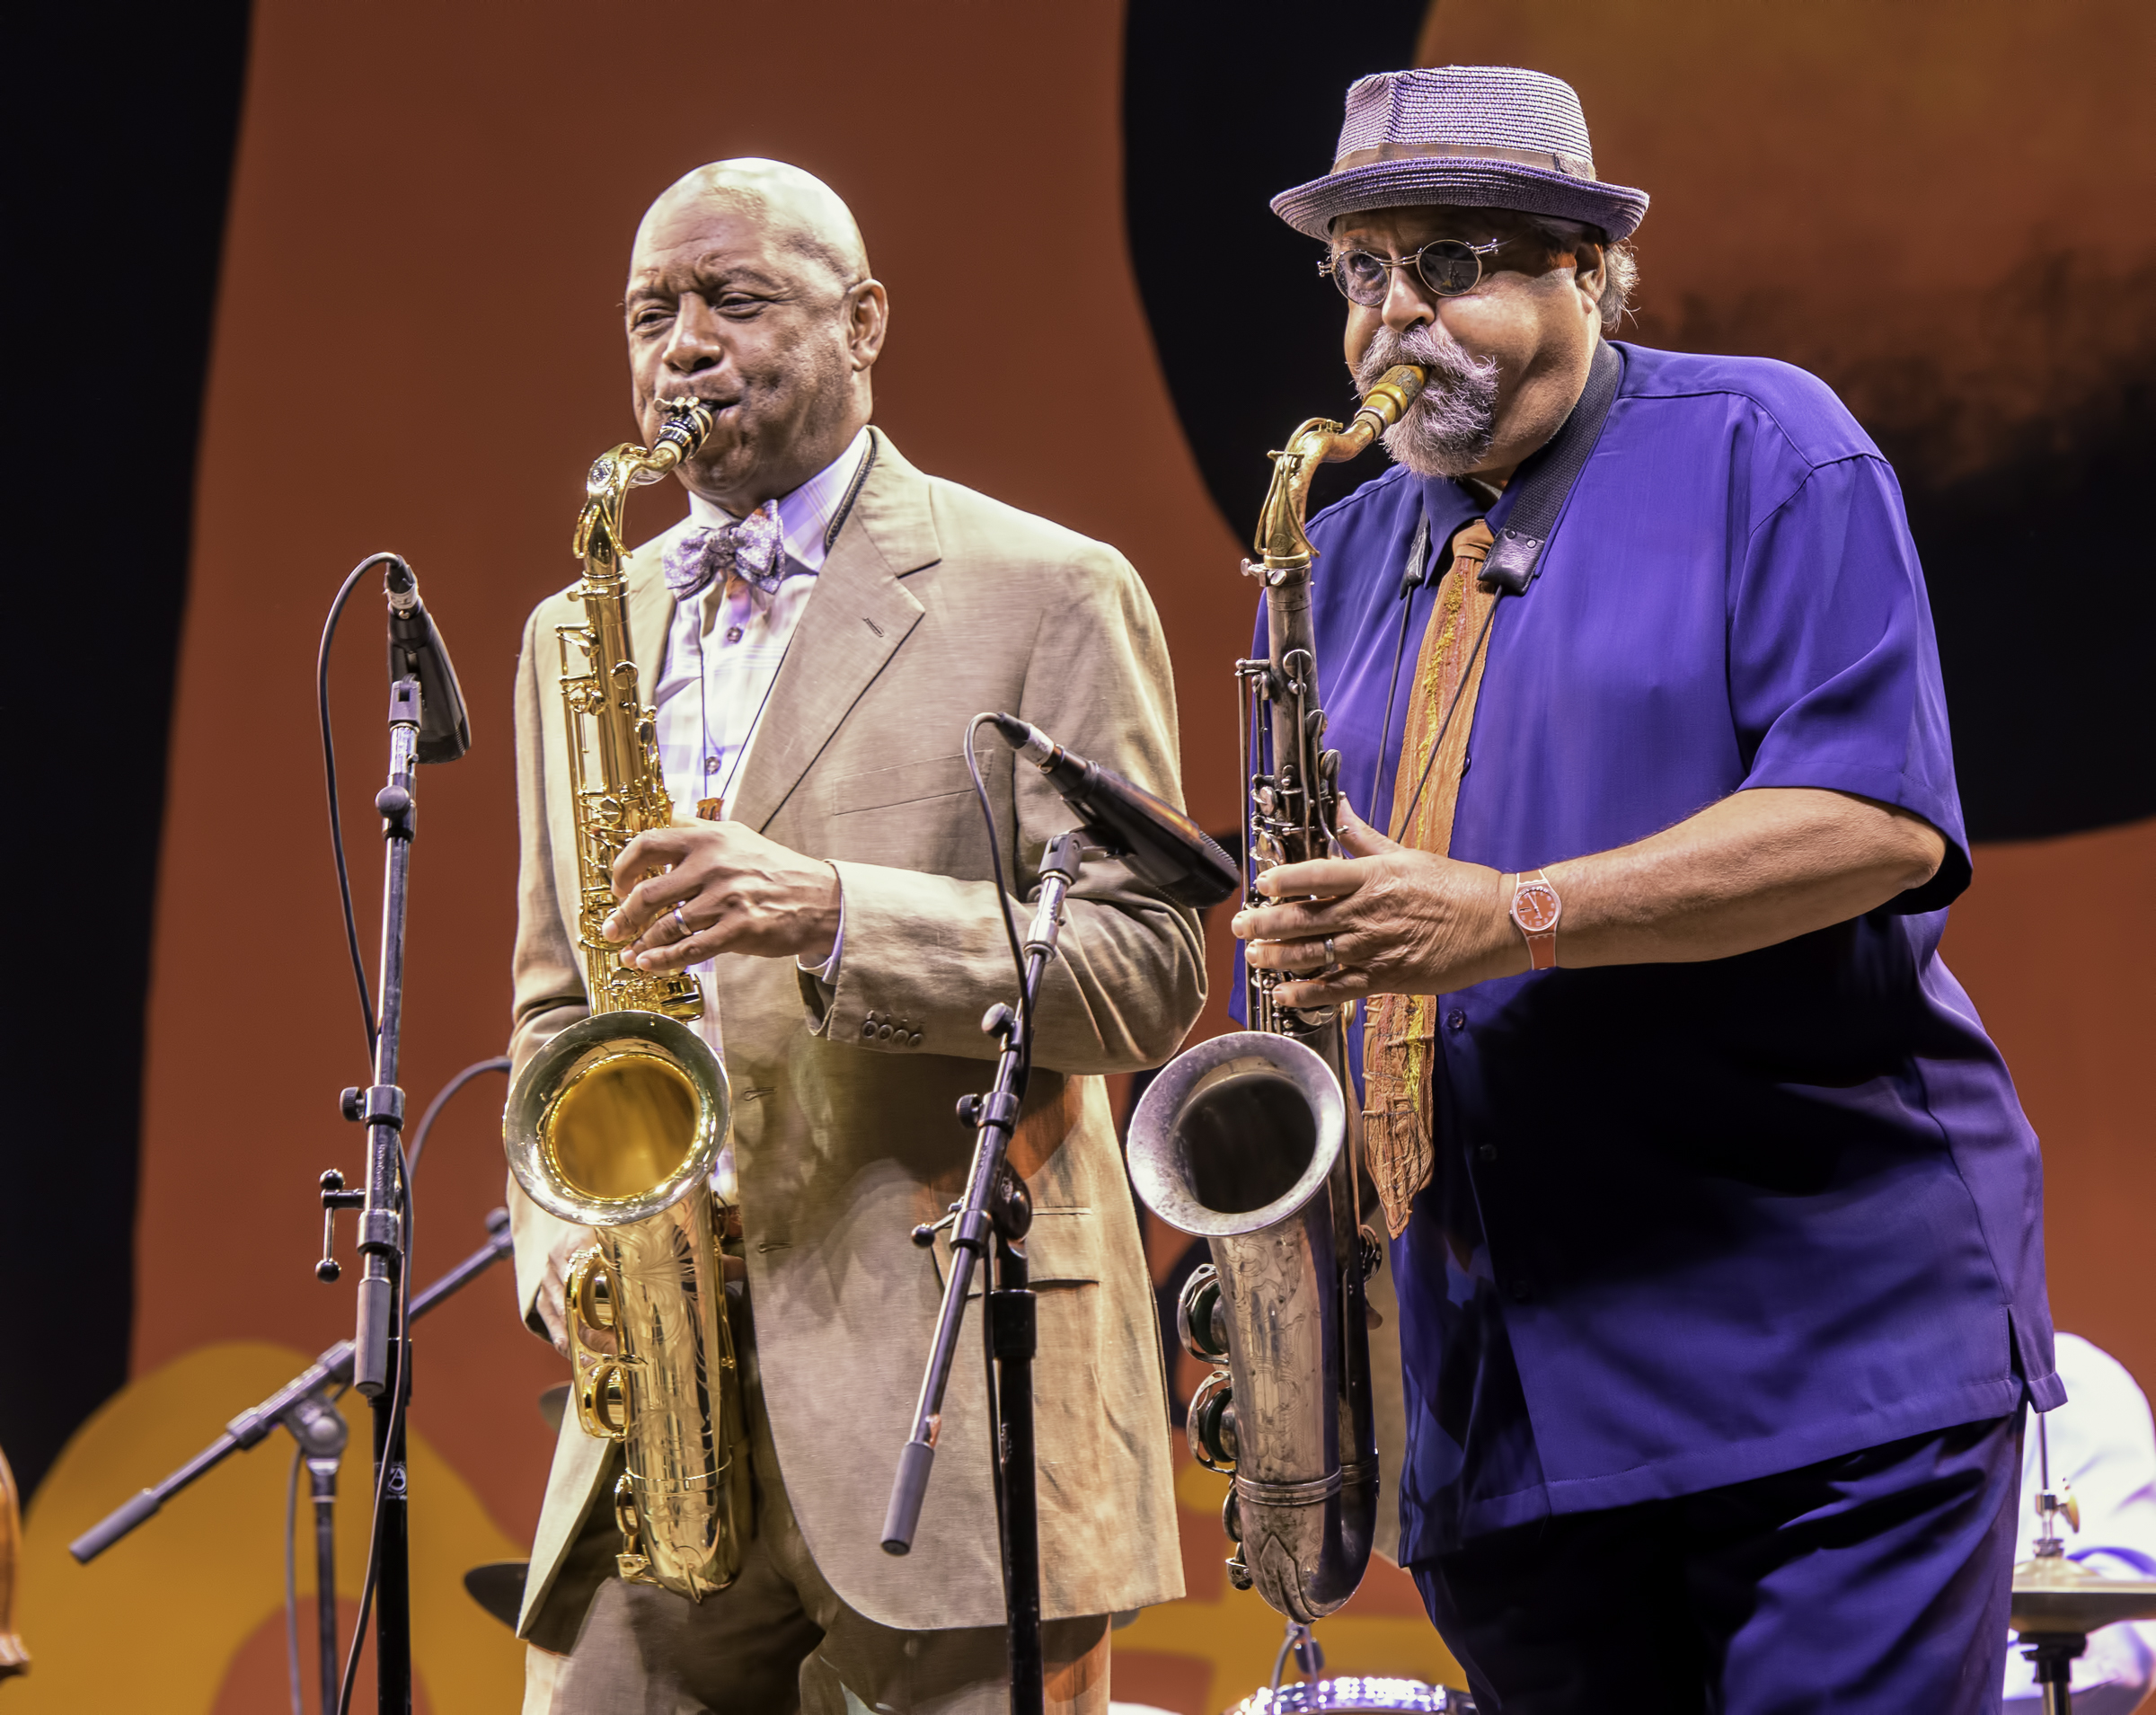 Branford Marsalis and Joe Lovano with A Tribute to Sonny Rollins at the Monterey Jazz Festival